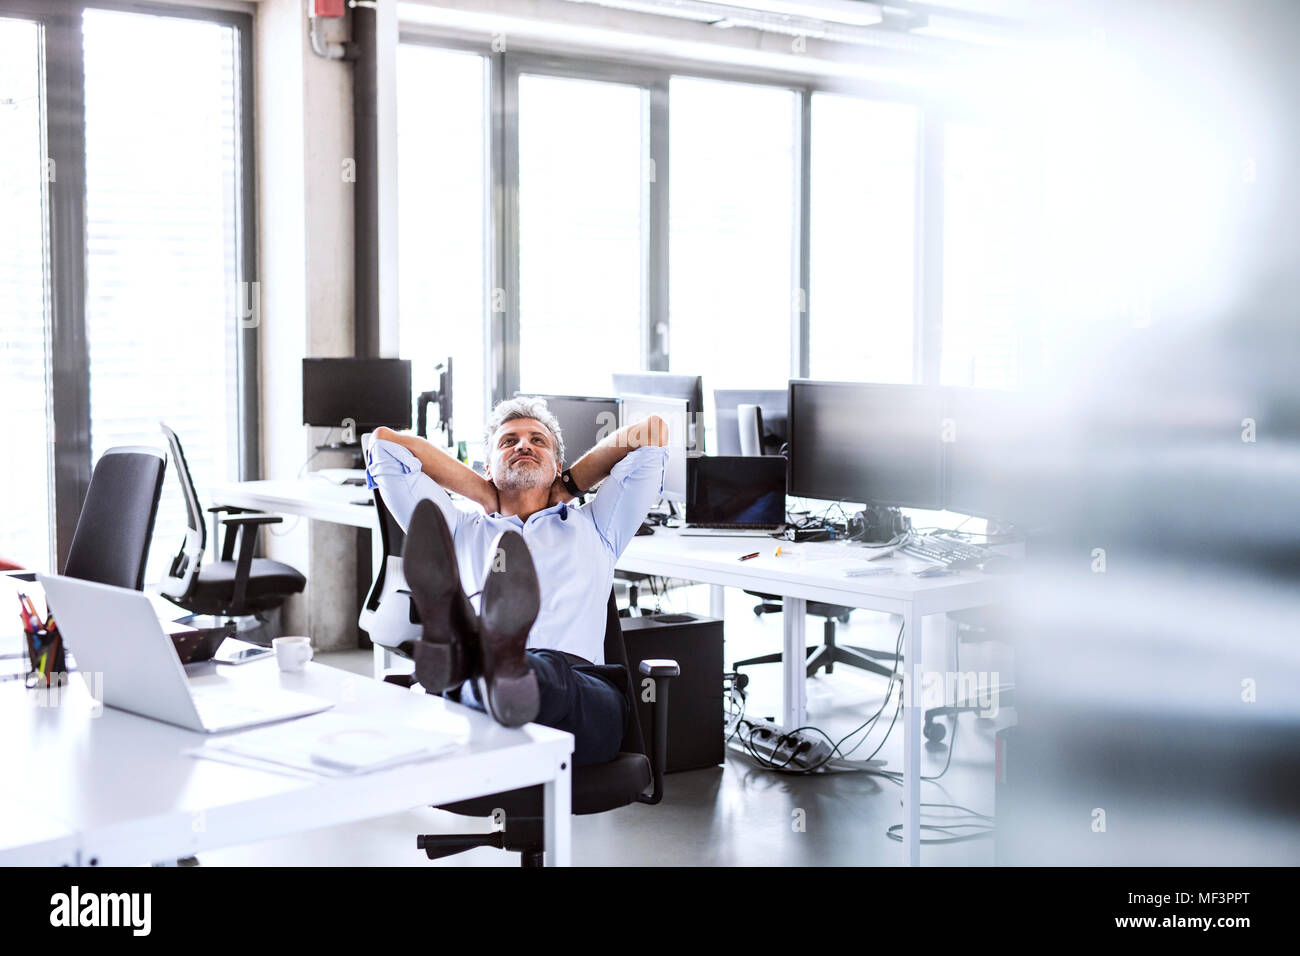 Relaxed mature businessman sitting at desk in office leaning back - Stock Image